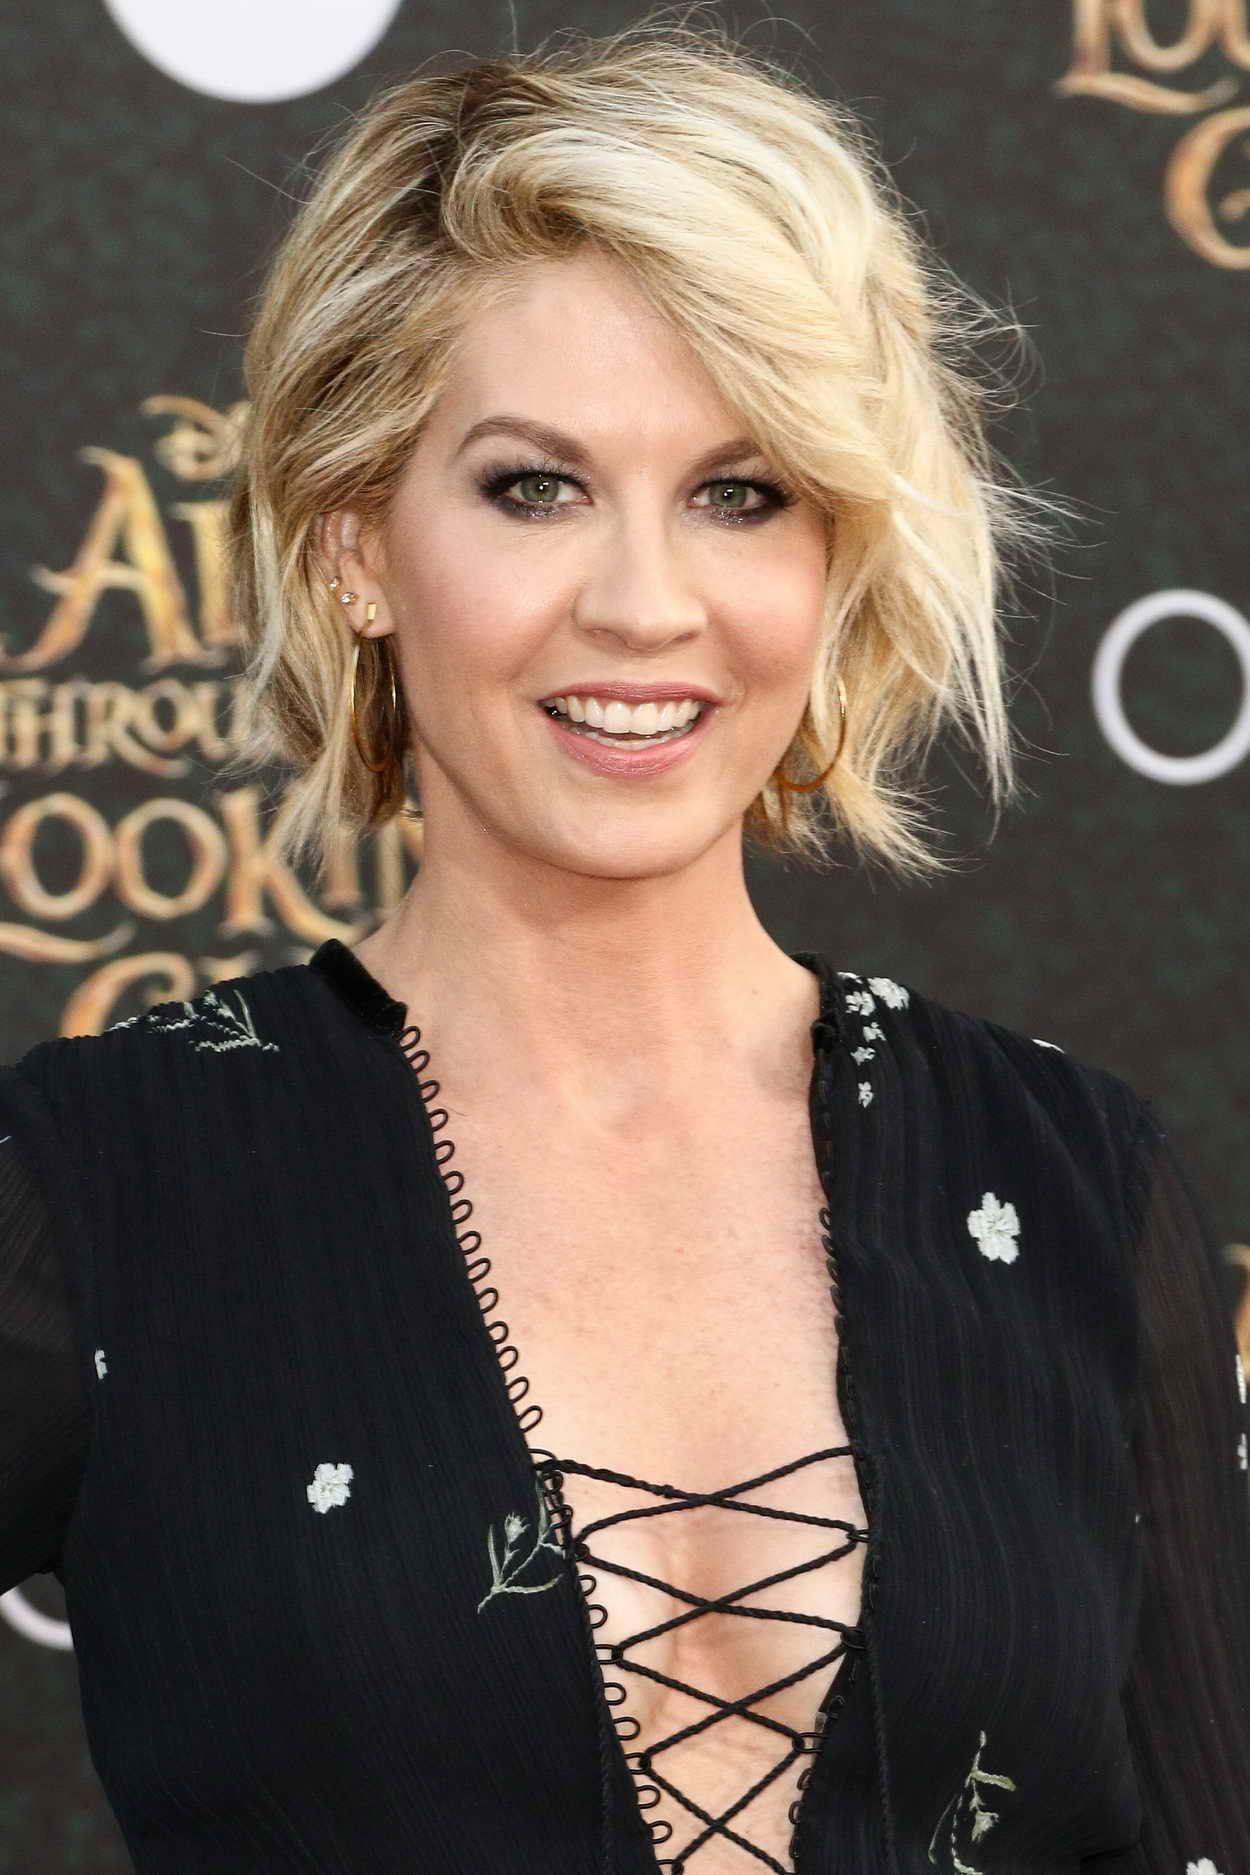 Jenna Elfman At Disneys Alice Through The Looking Glass Premiere In